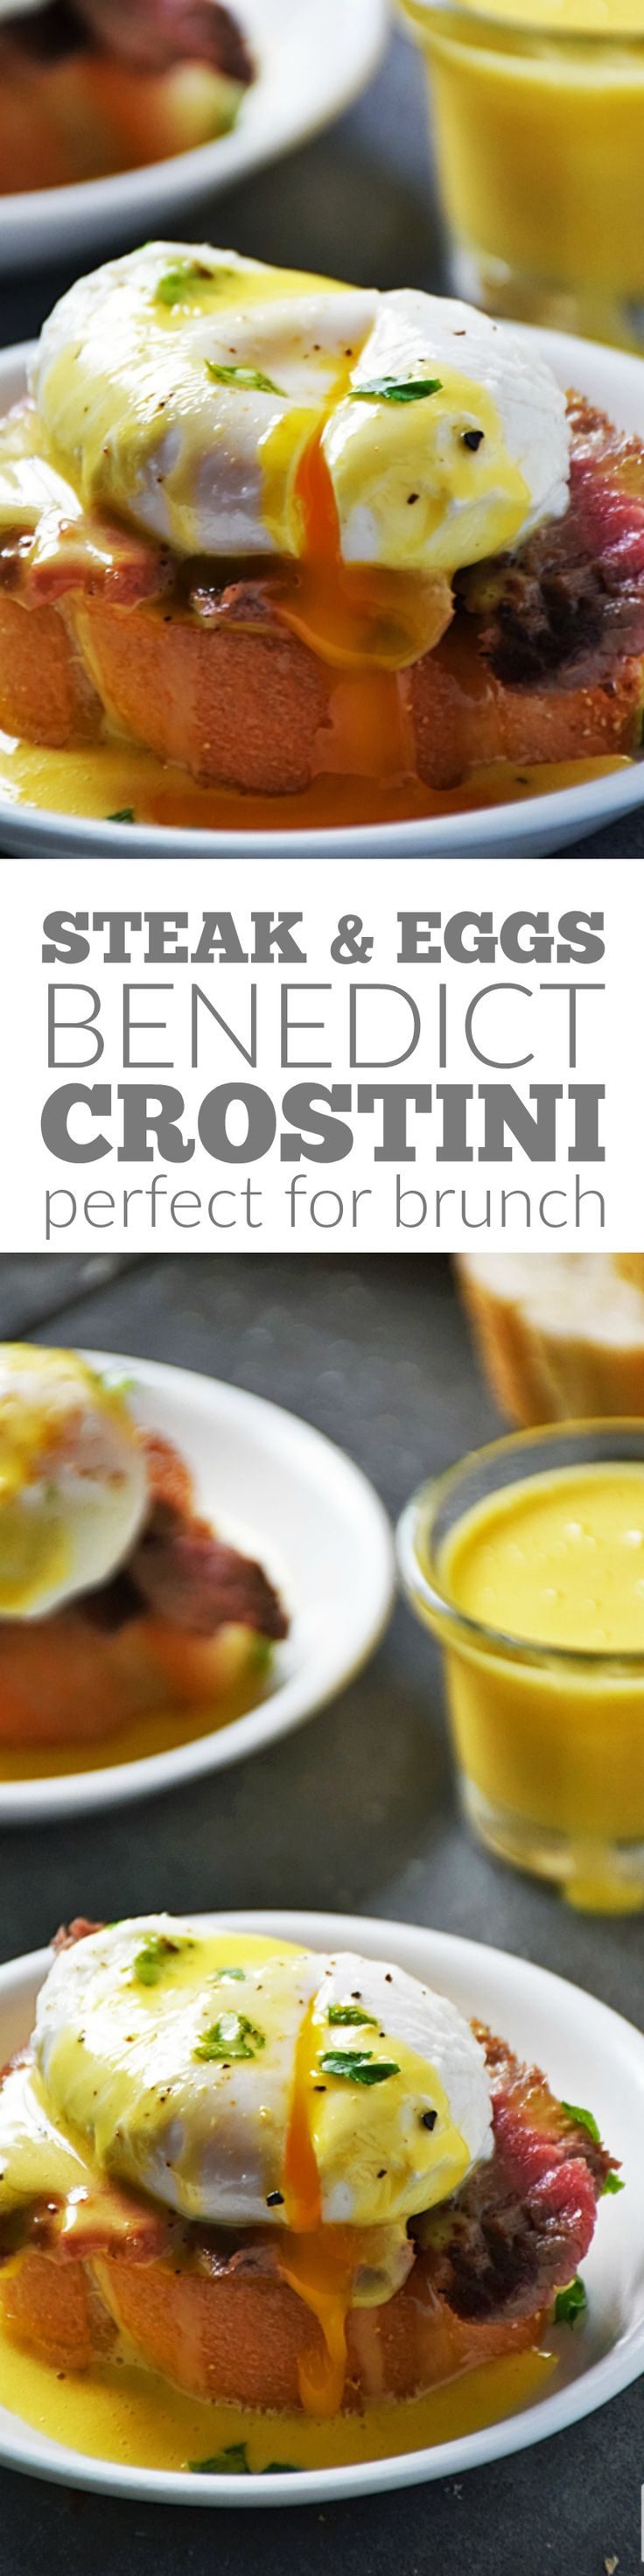 Steak and Eggs Benedict Crostini is perfect for brunch, a starter before dinner, or even for a party appetizer! This recipe is always a winner anytime of day for any occasion. #LTGrecipes #SundaySupper #FLBeefImmersion @flbeefcouncil